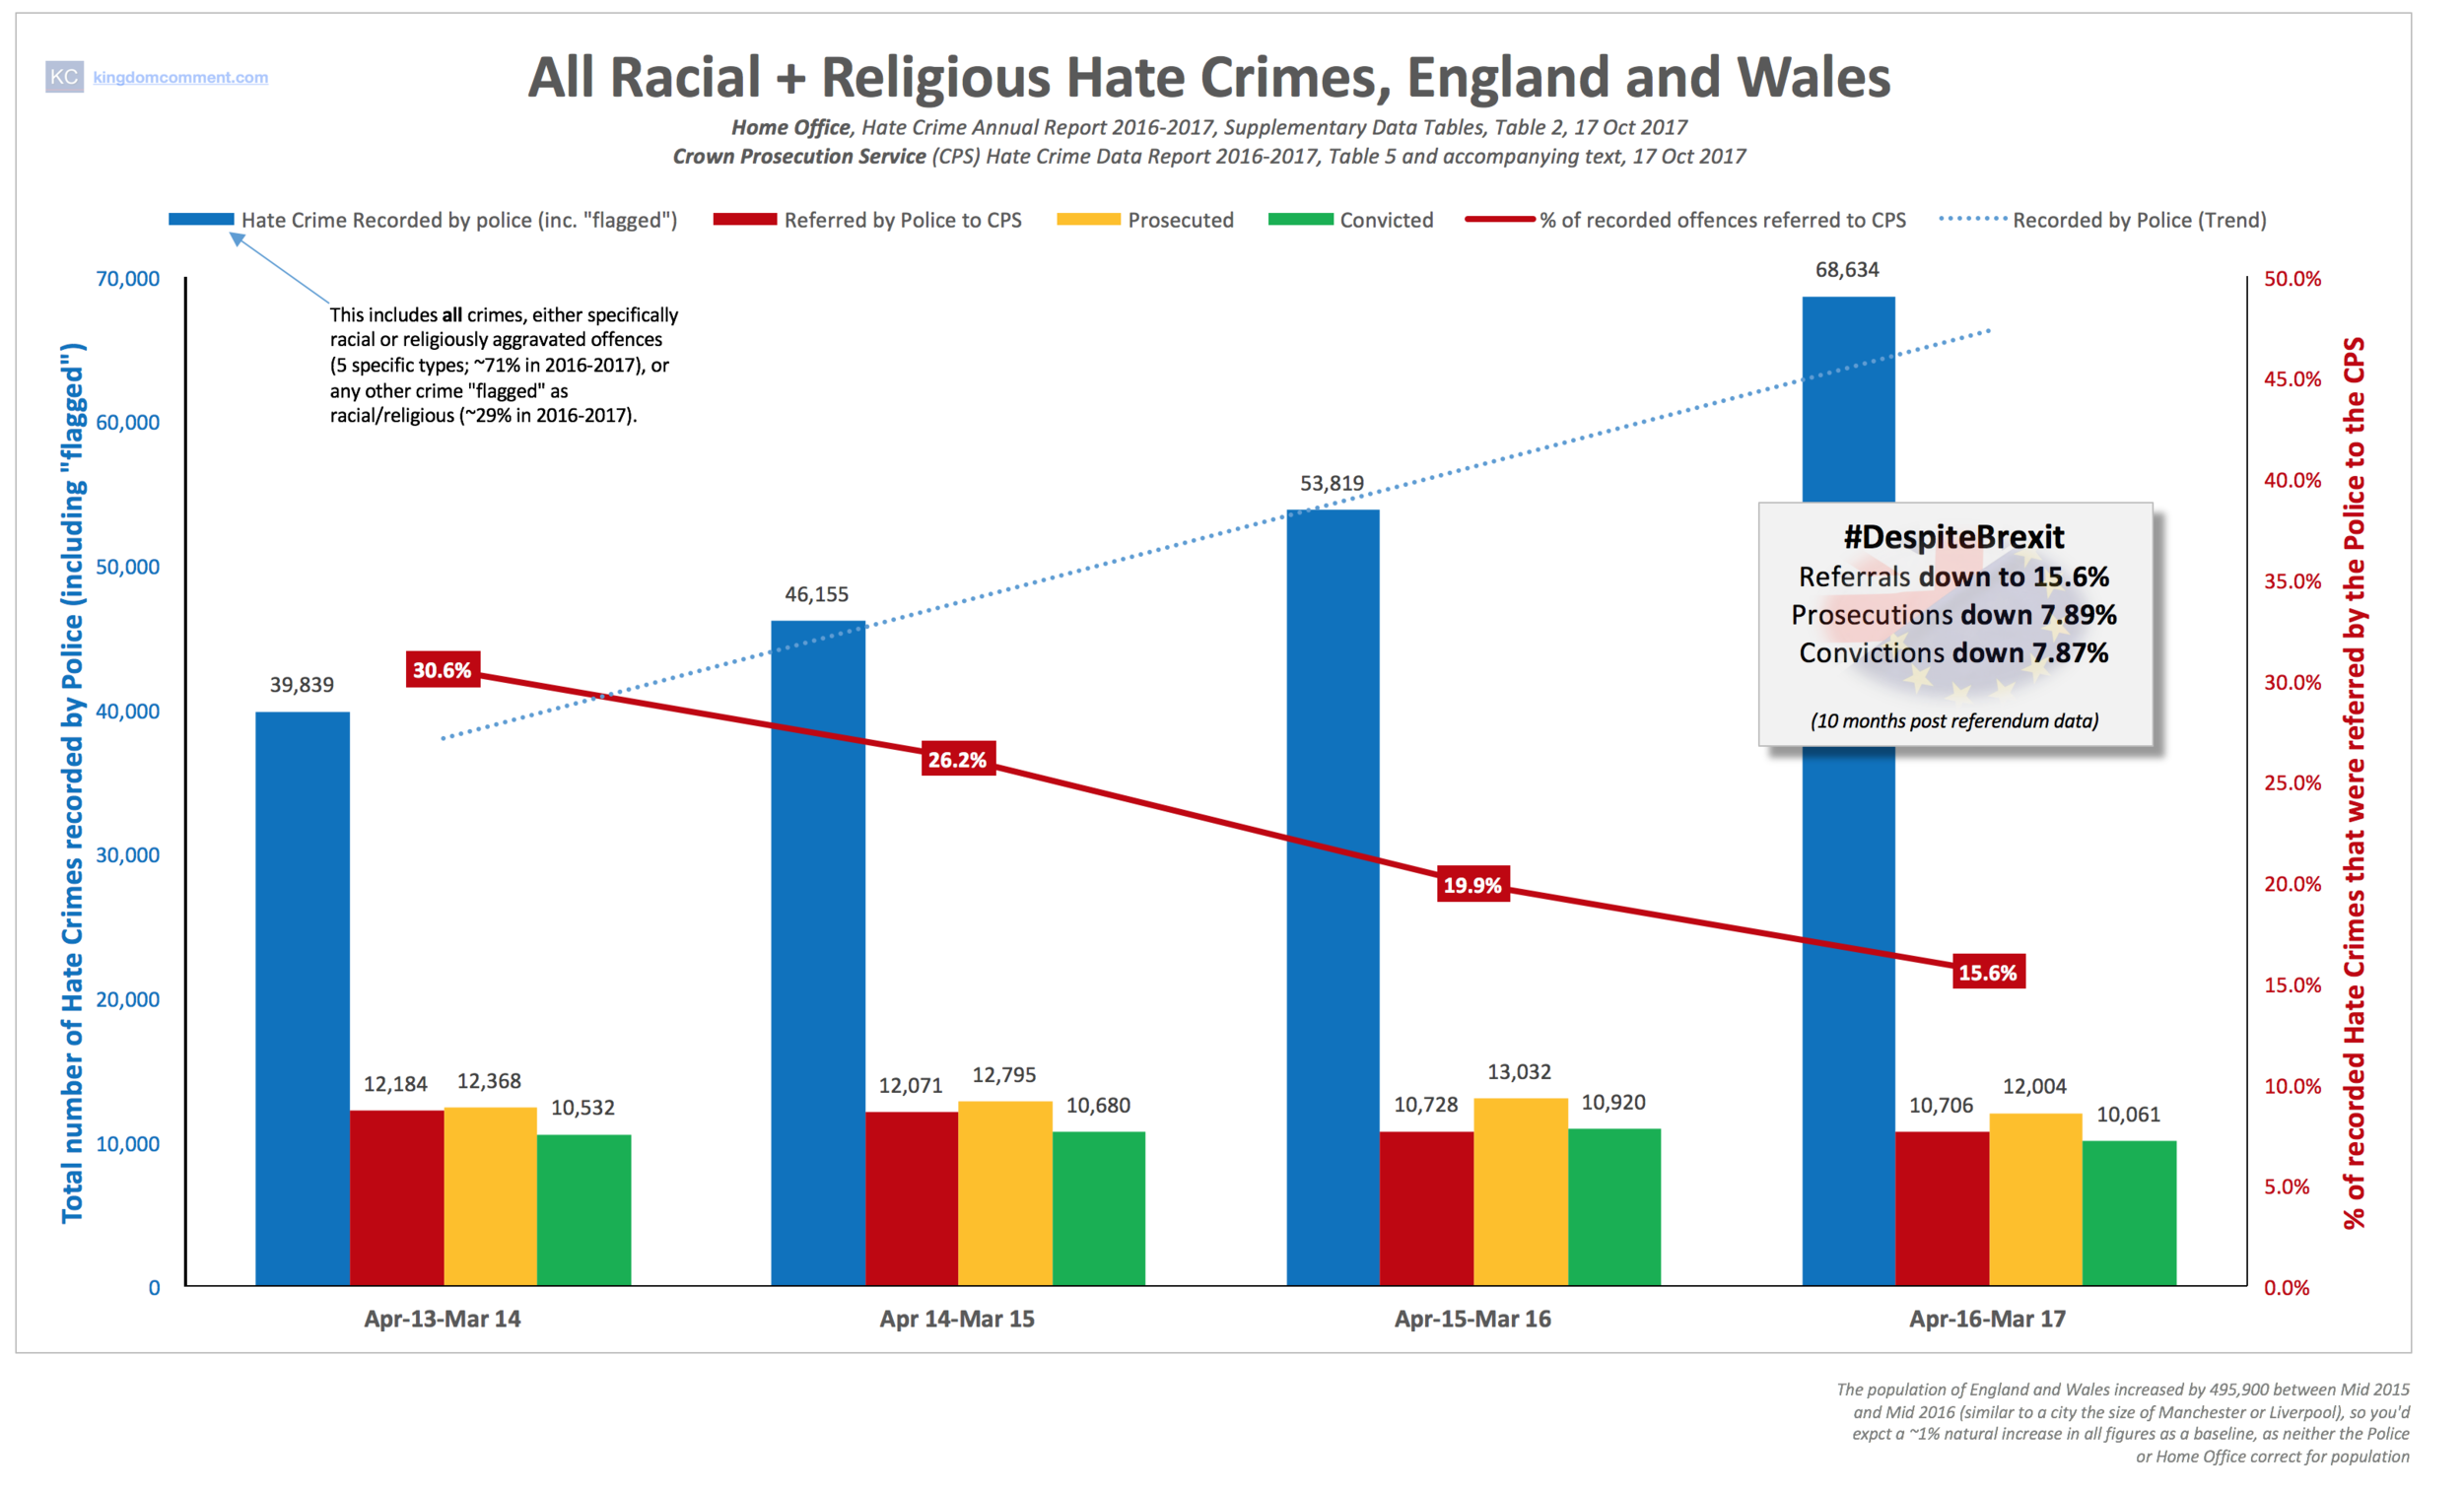 All Racial Religious Hate Crime